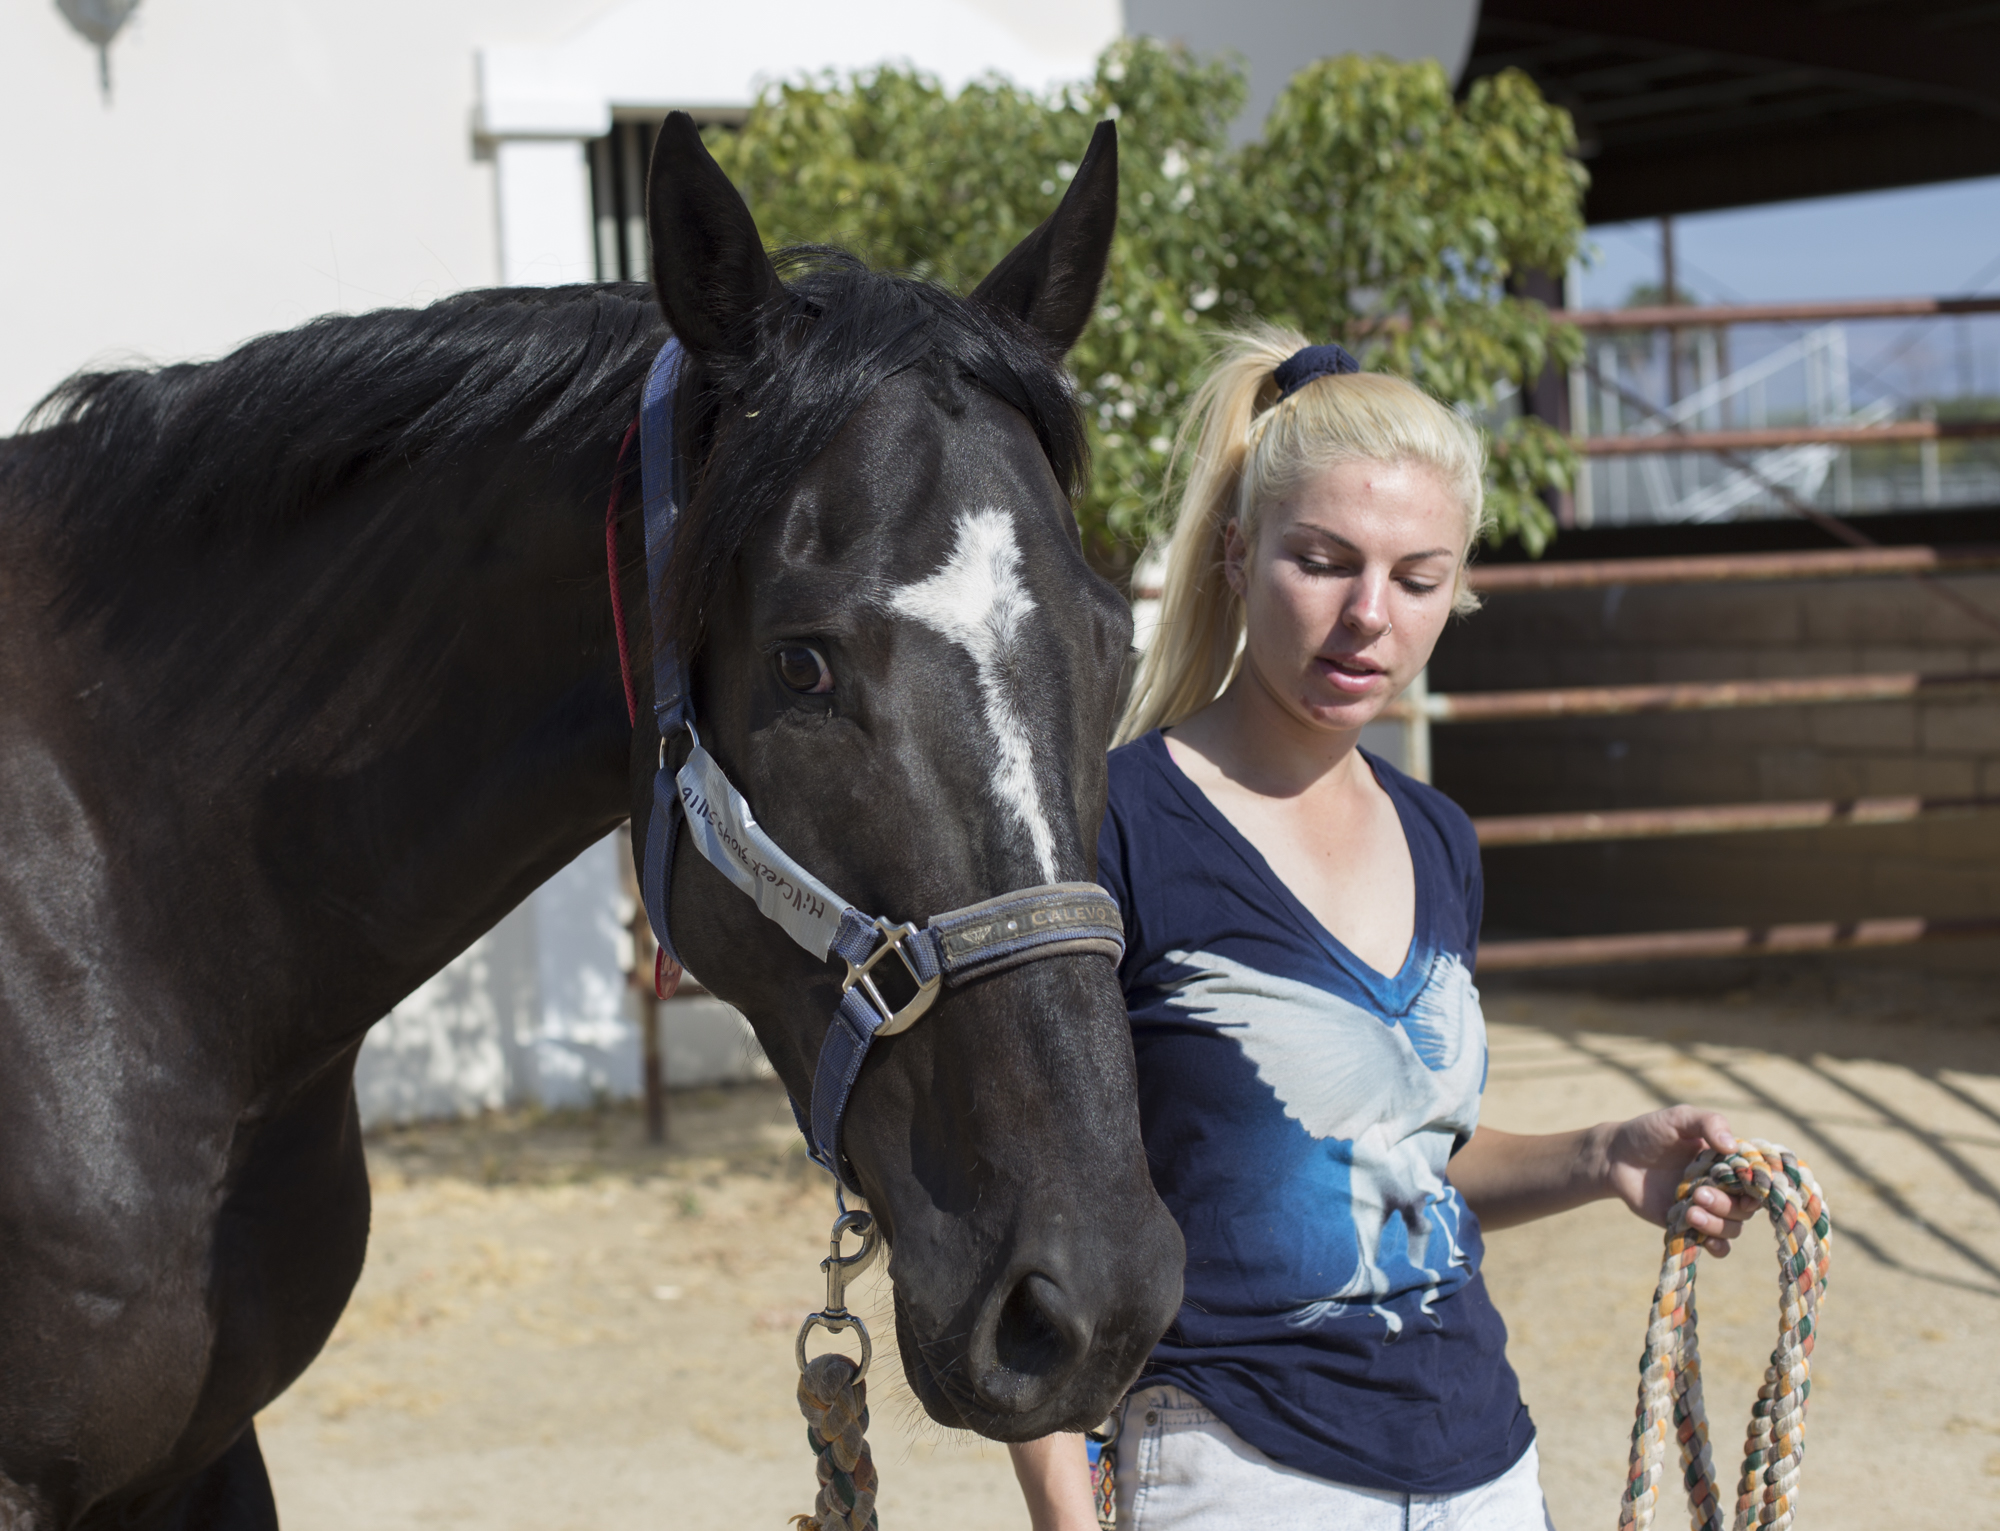 Equestrian Center takes in animals evacuated from brush fire